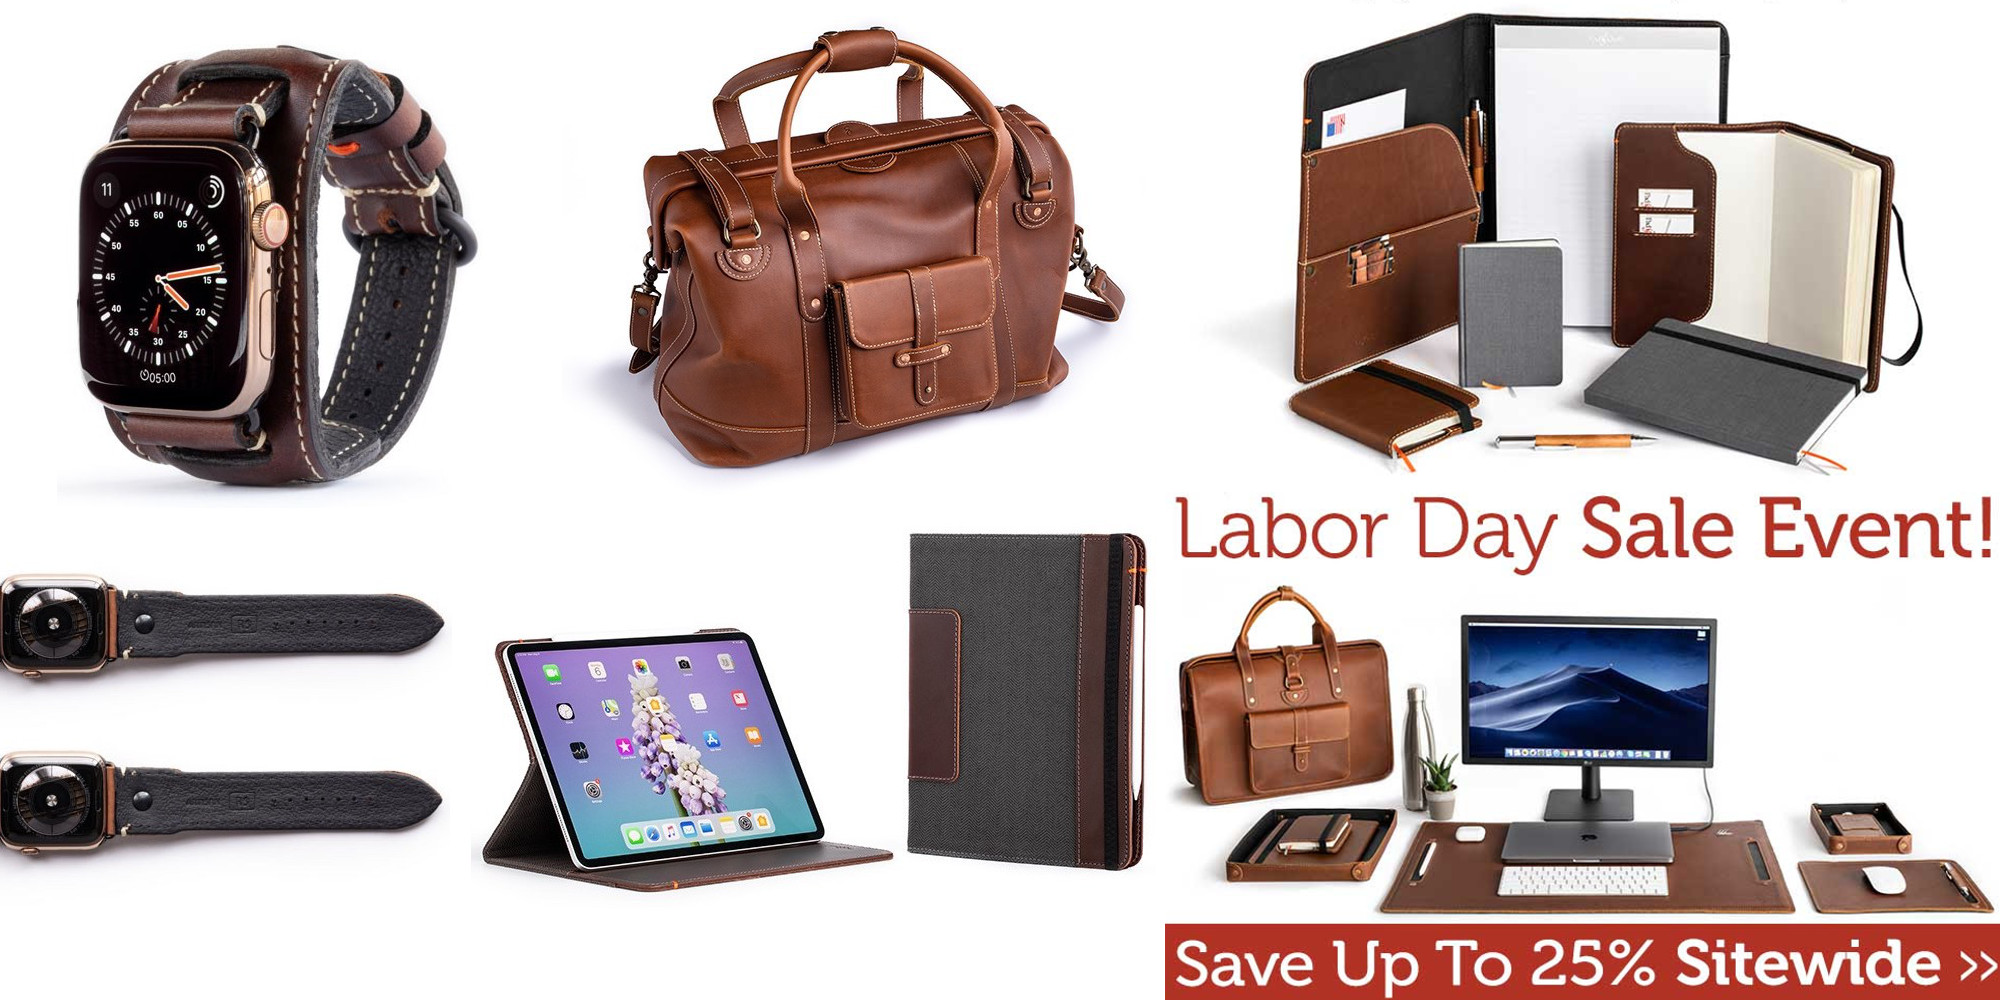 Pad & Quill Labor Day Sale up to 25% off: Apple accessories, much more